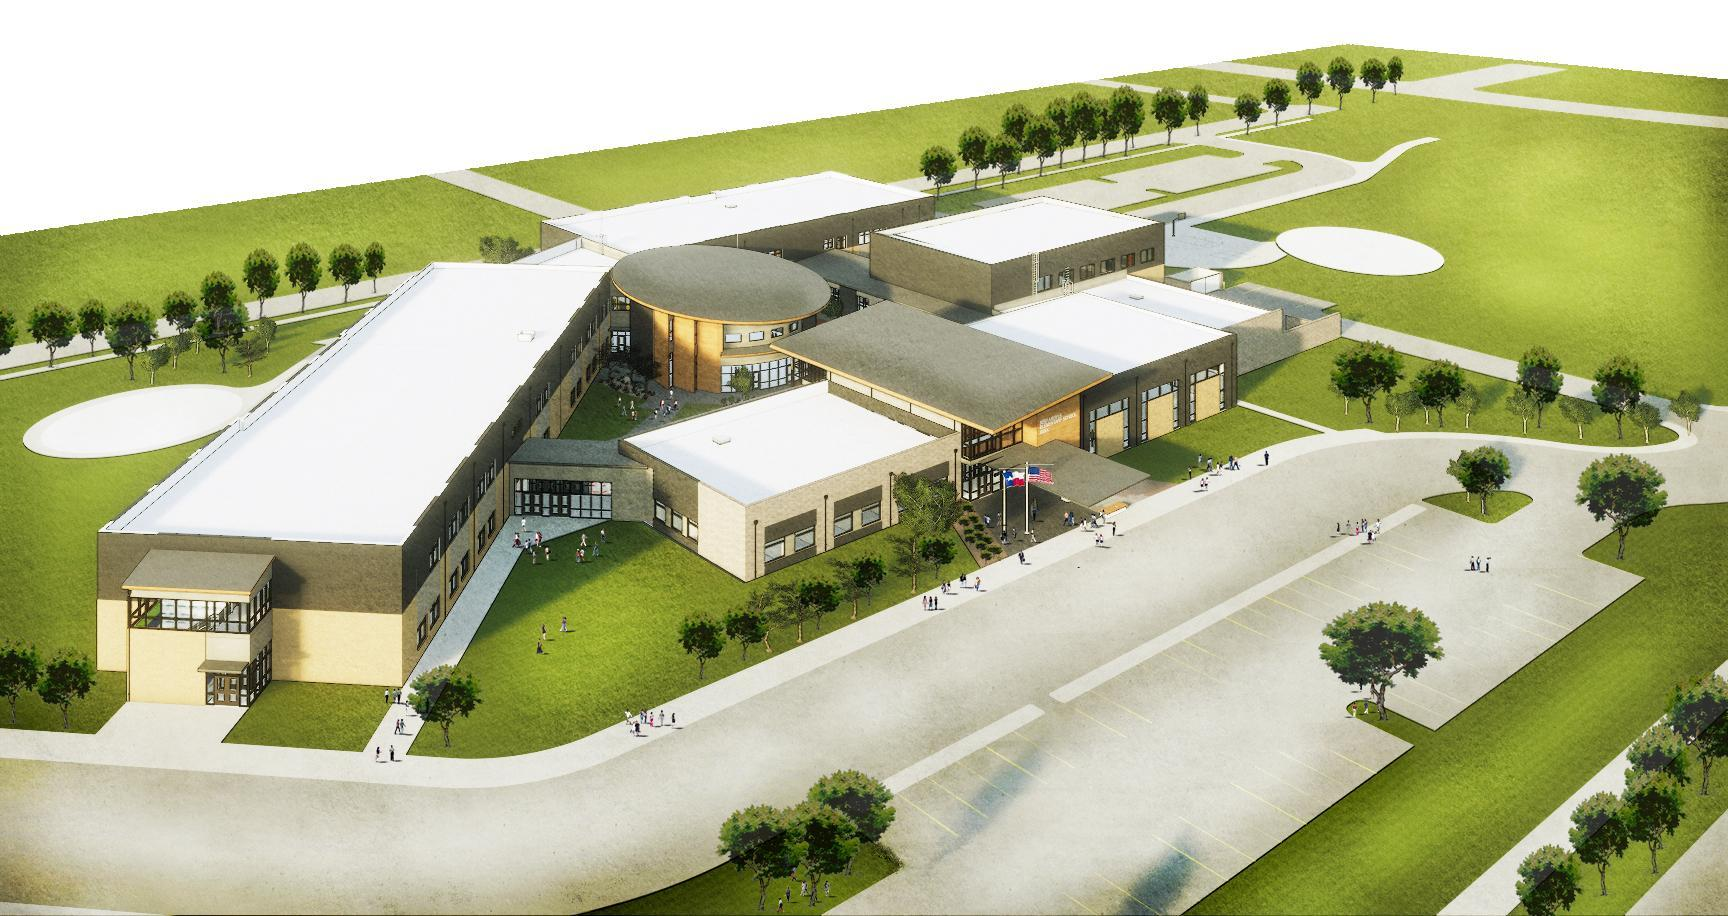 Architectural Drawing of Argyle West Elementary